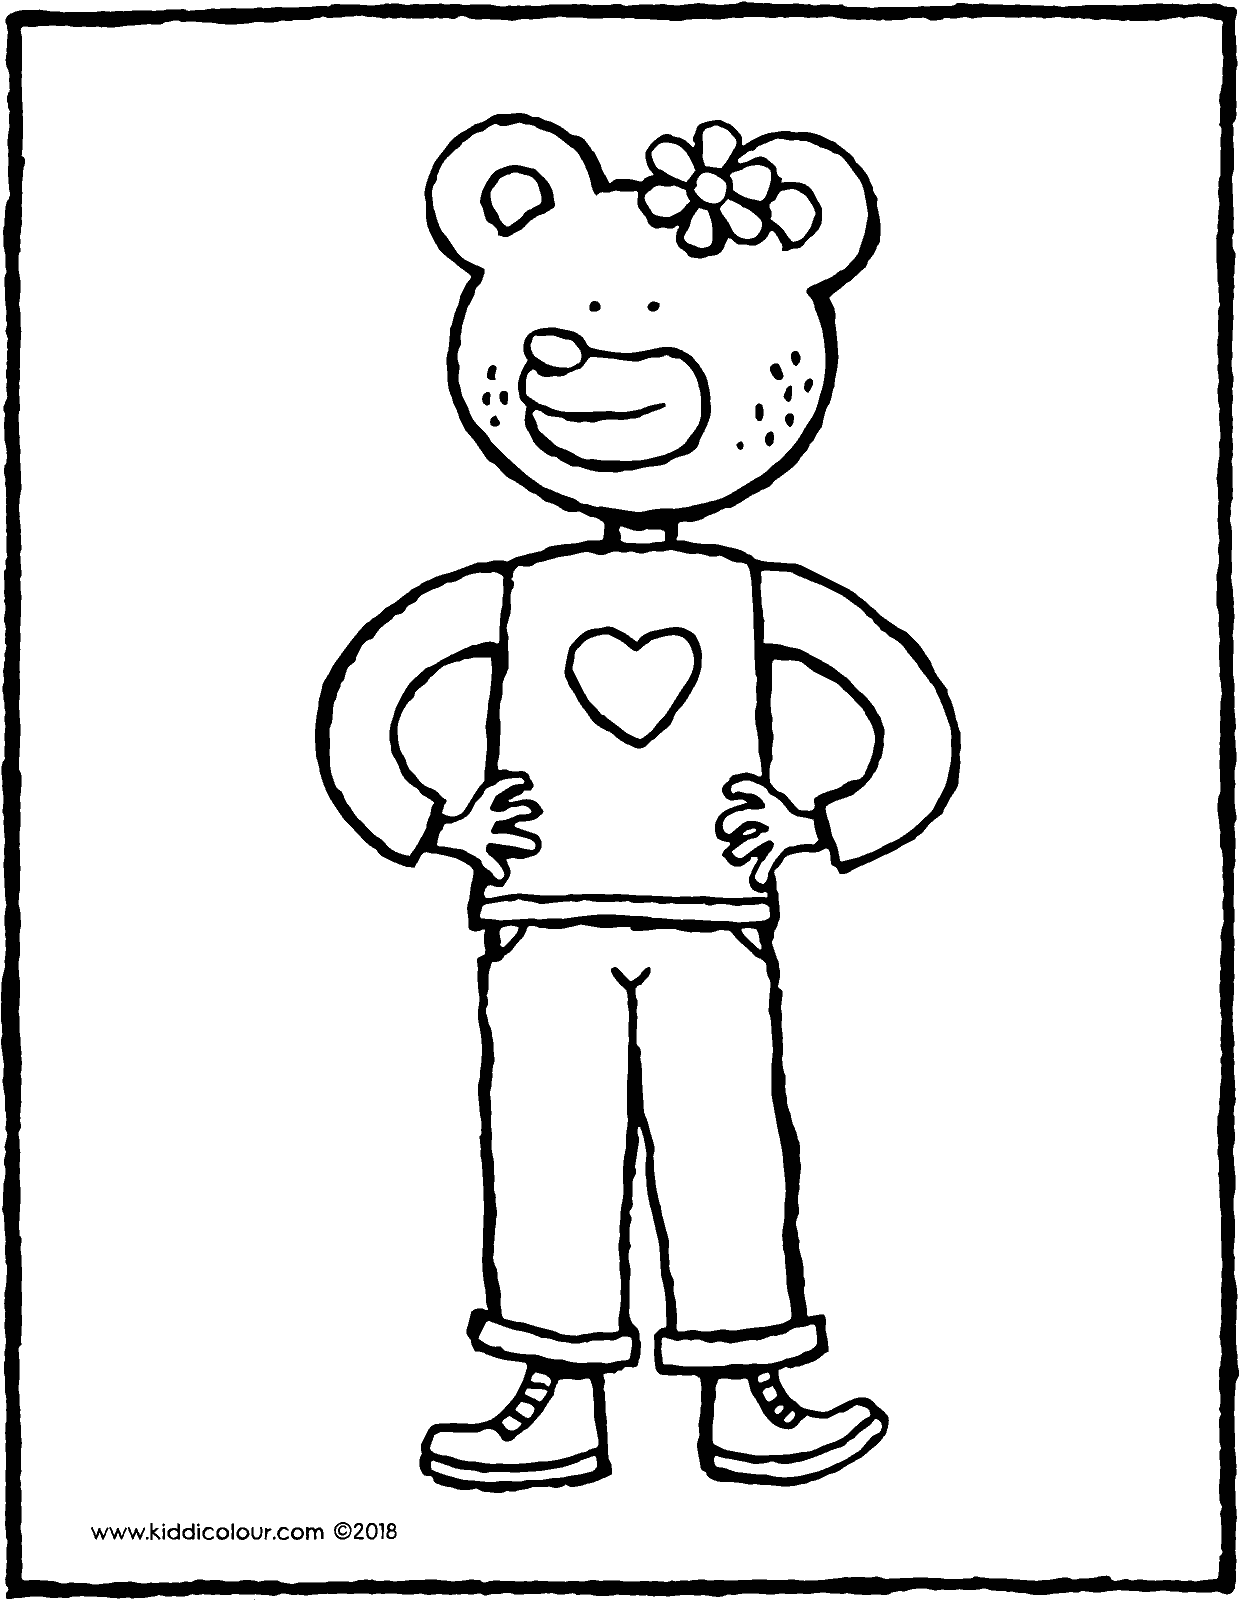 here is Amira bear colouring page drawing picture 01V